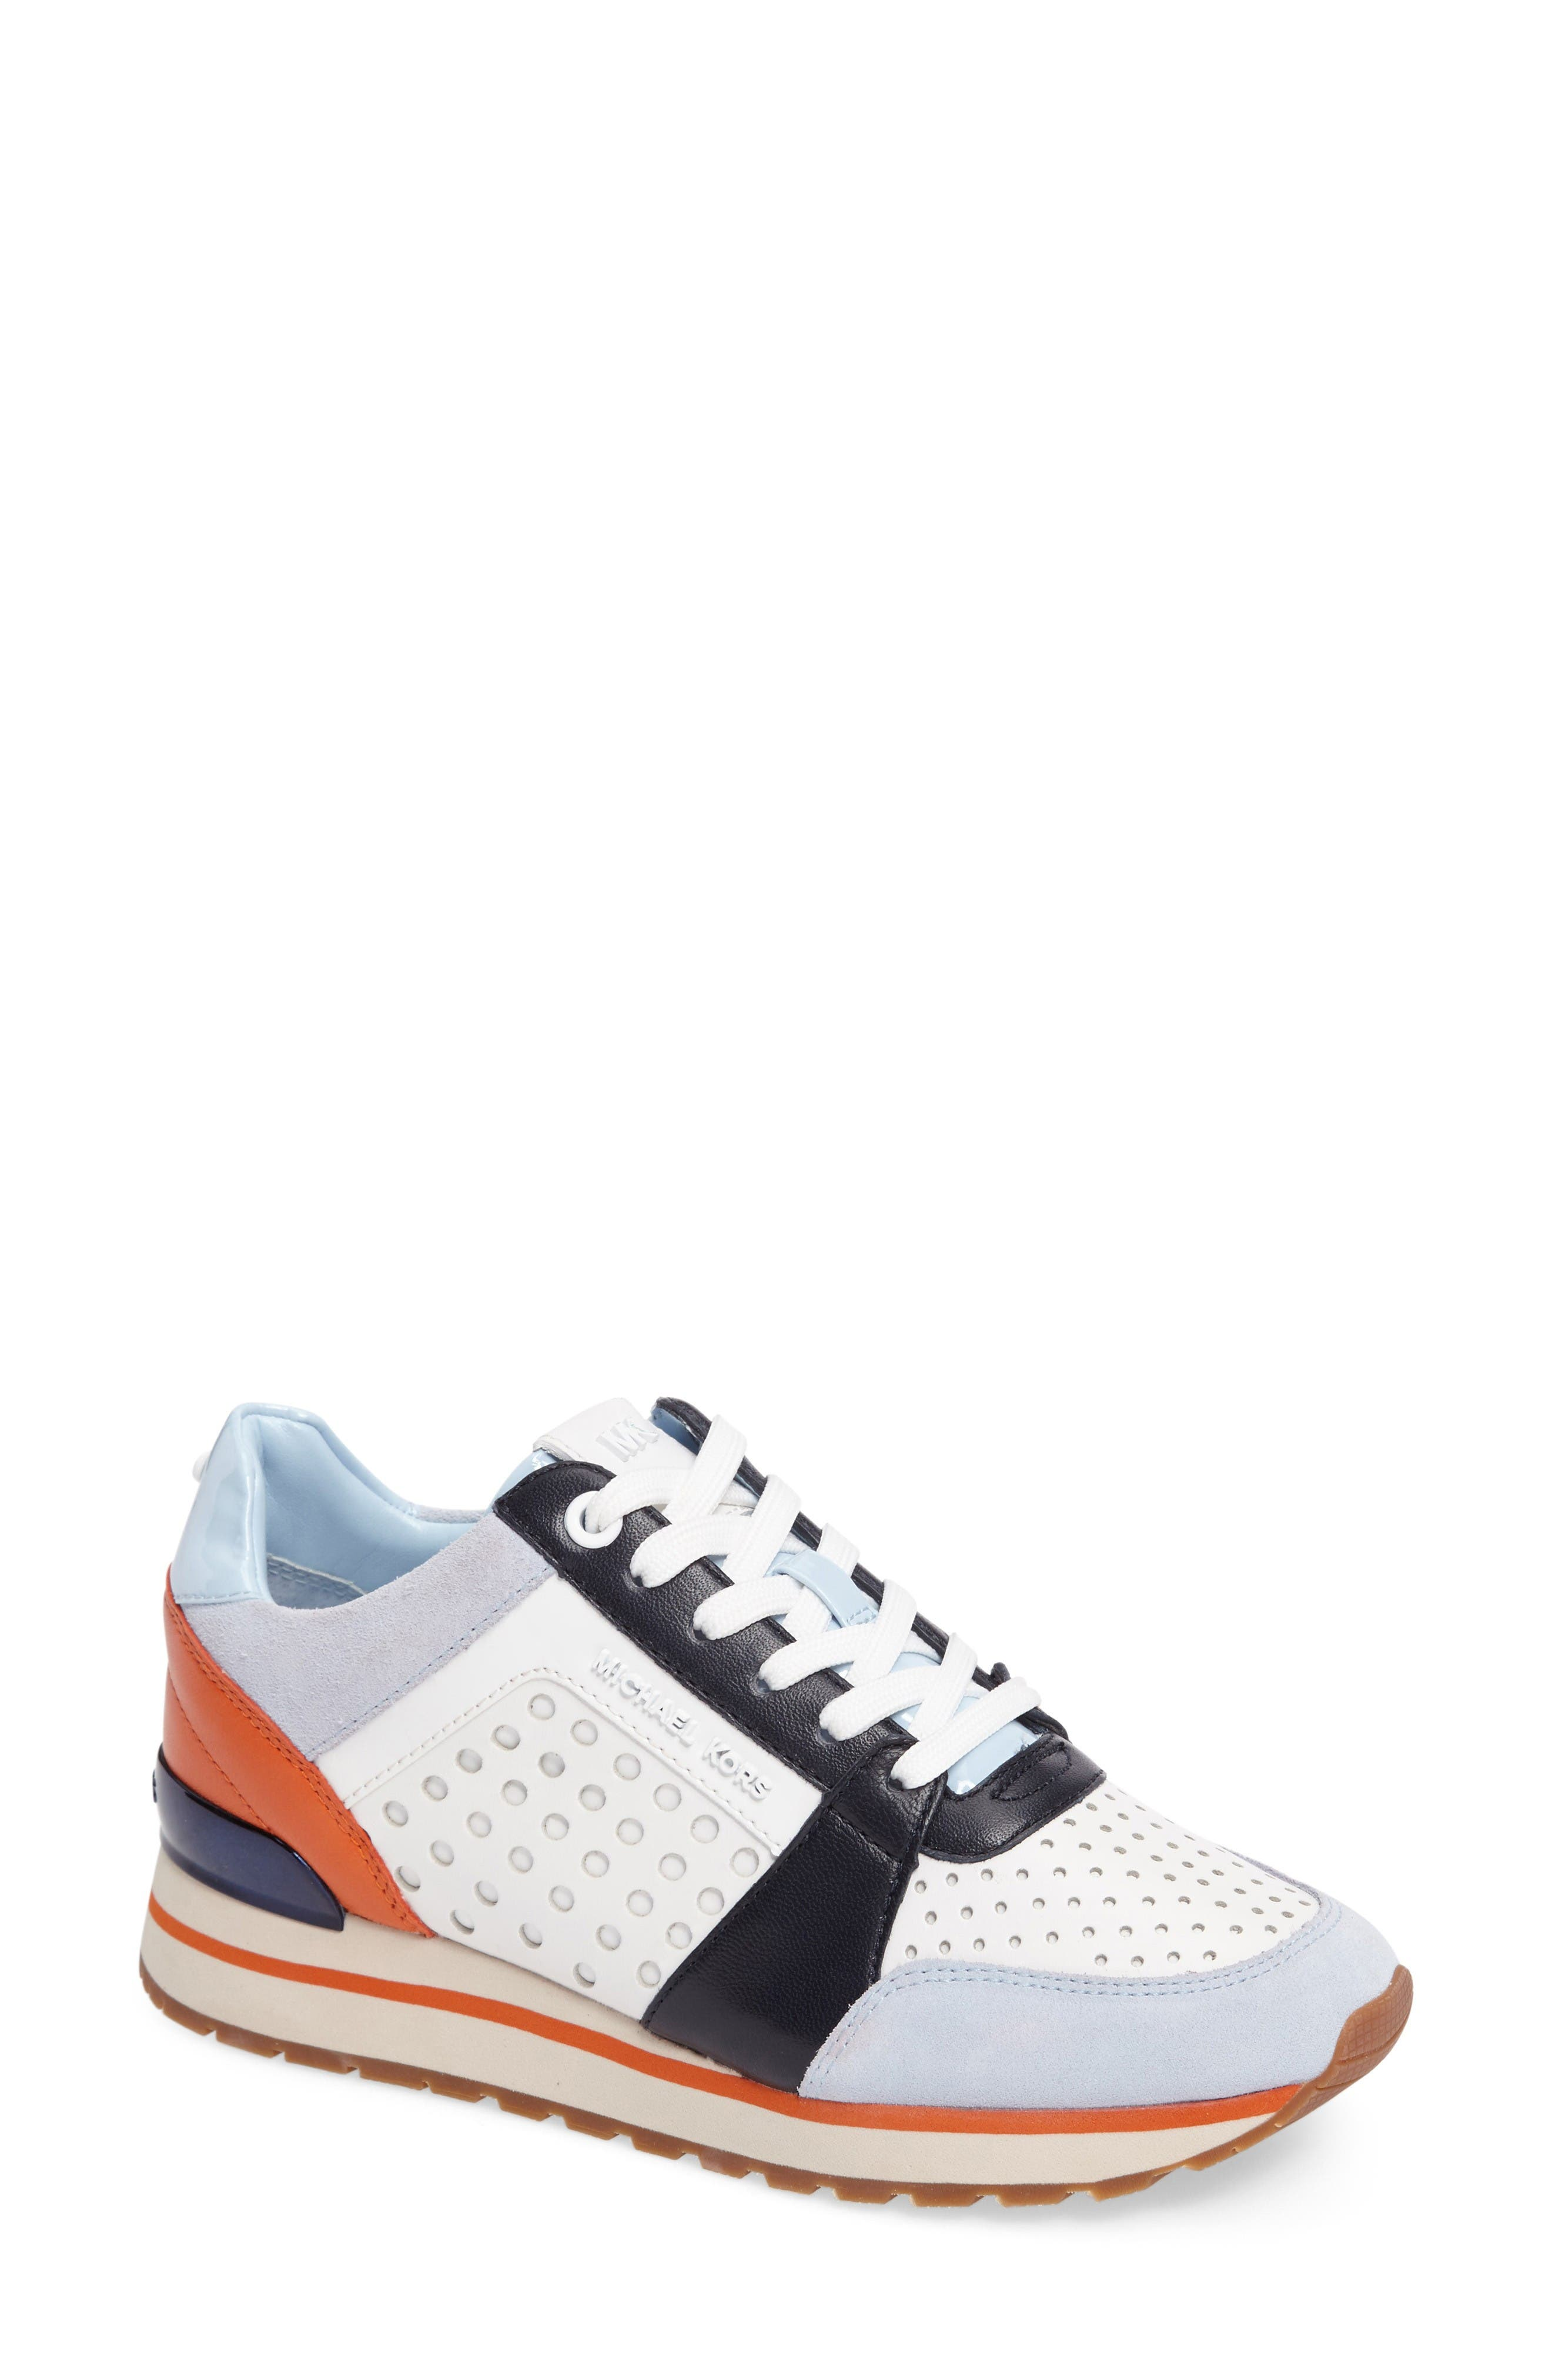 Alternate Image 1 Selected - MICHAEL Michael Kors Billie Perforated Sneaker (Women)